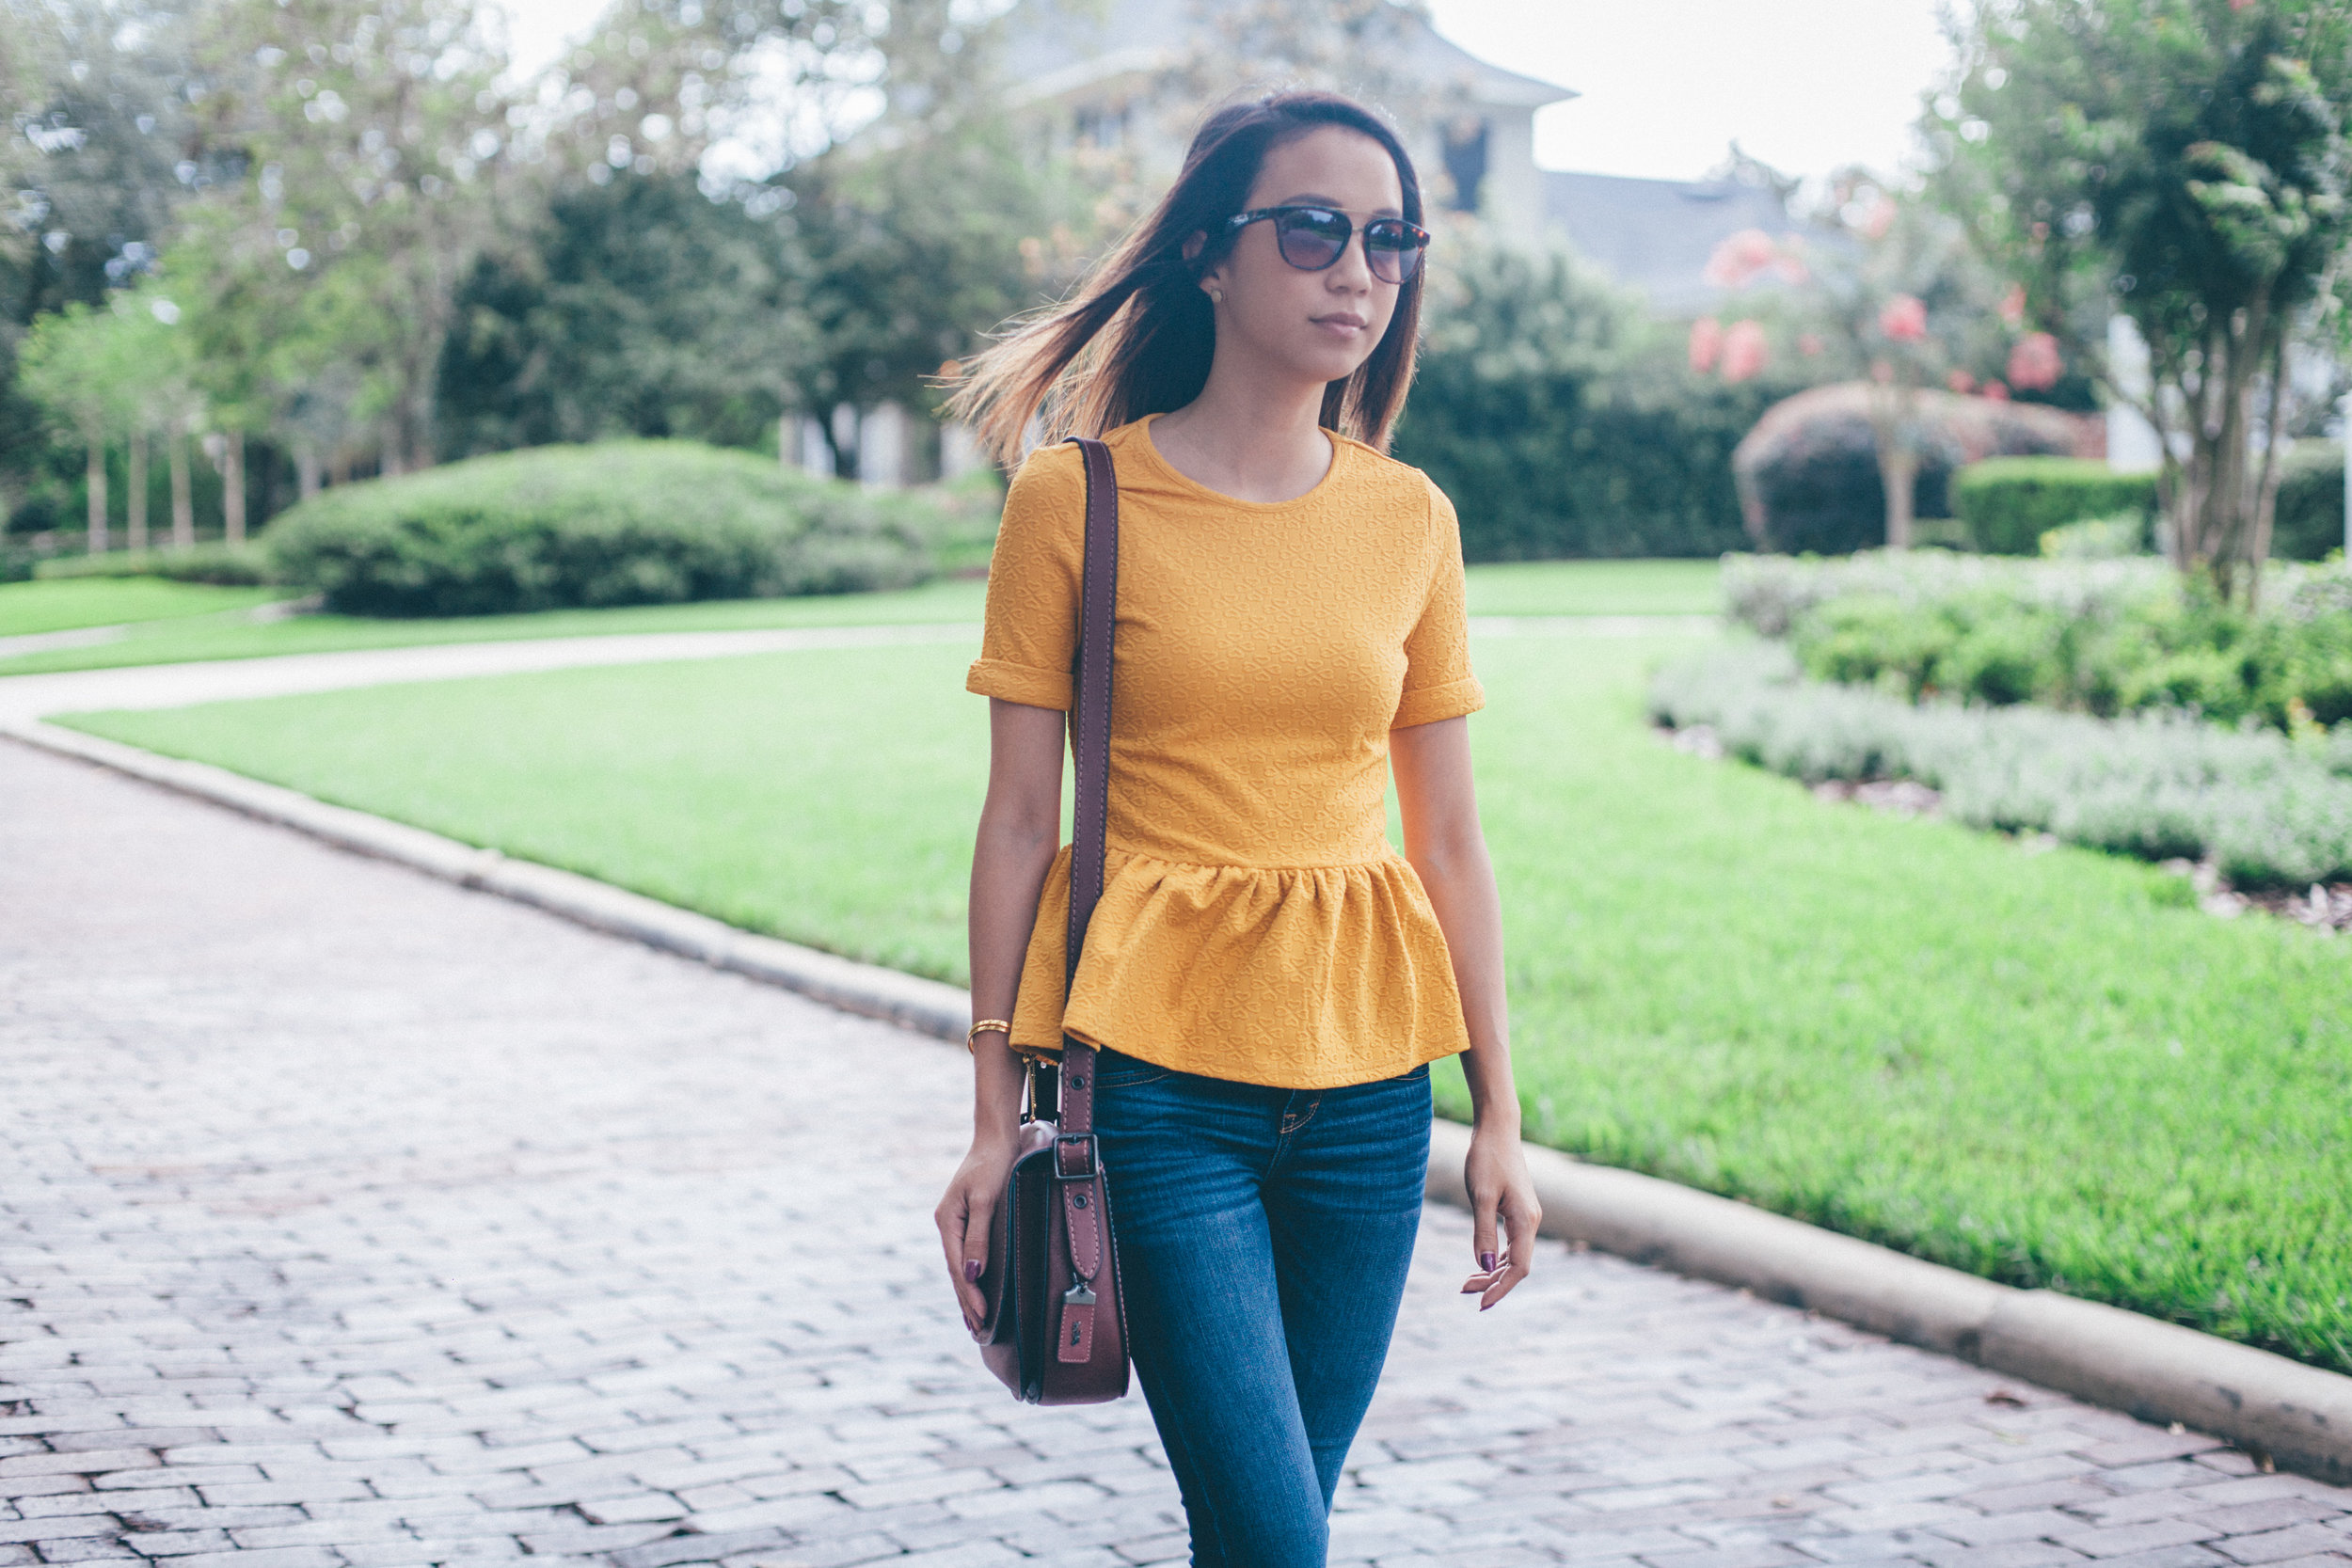 This Jenn Girl - Shein Yellow Peplum 5